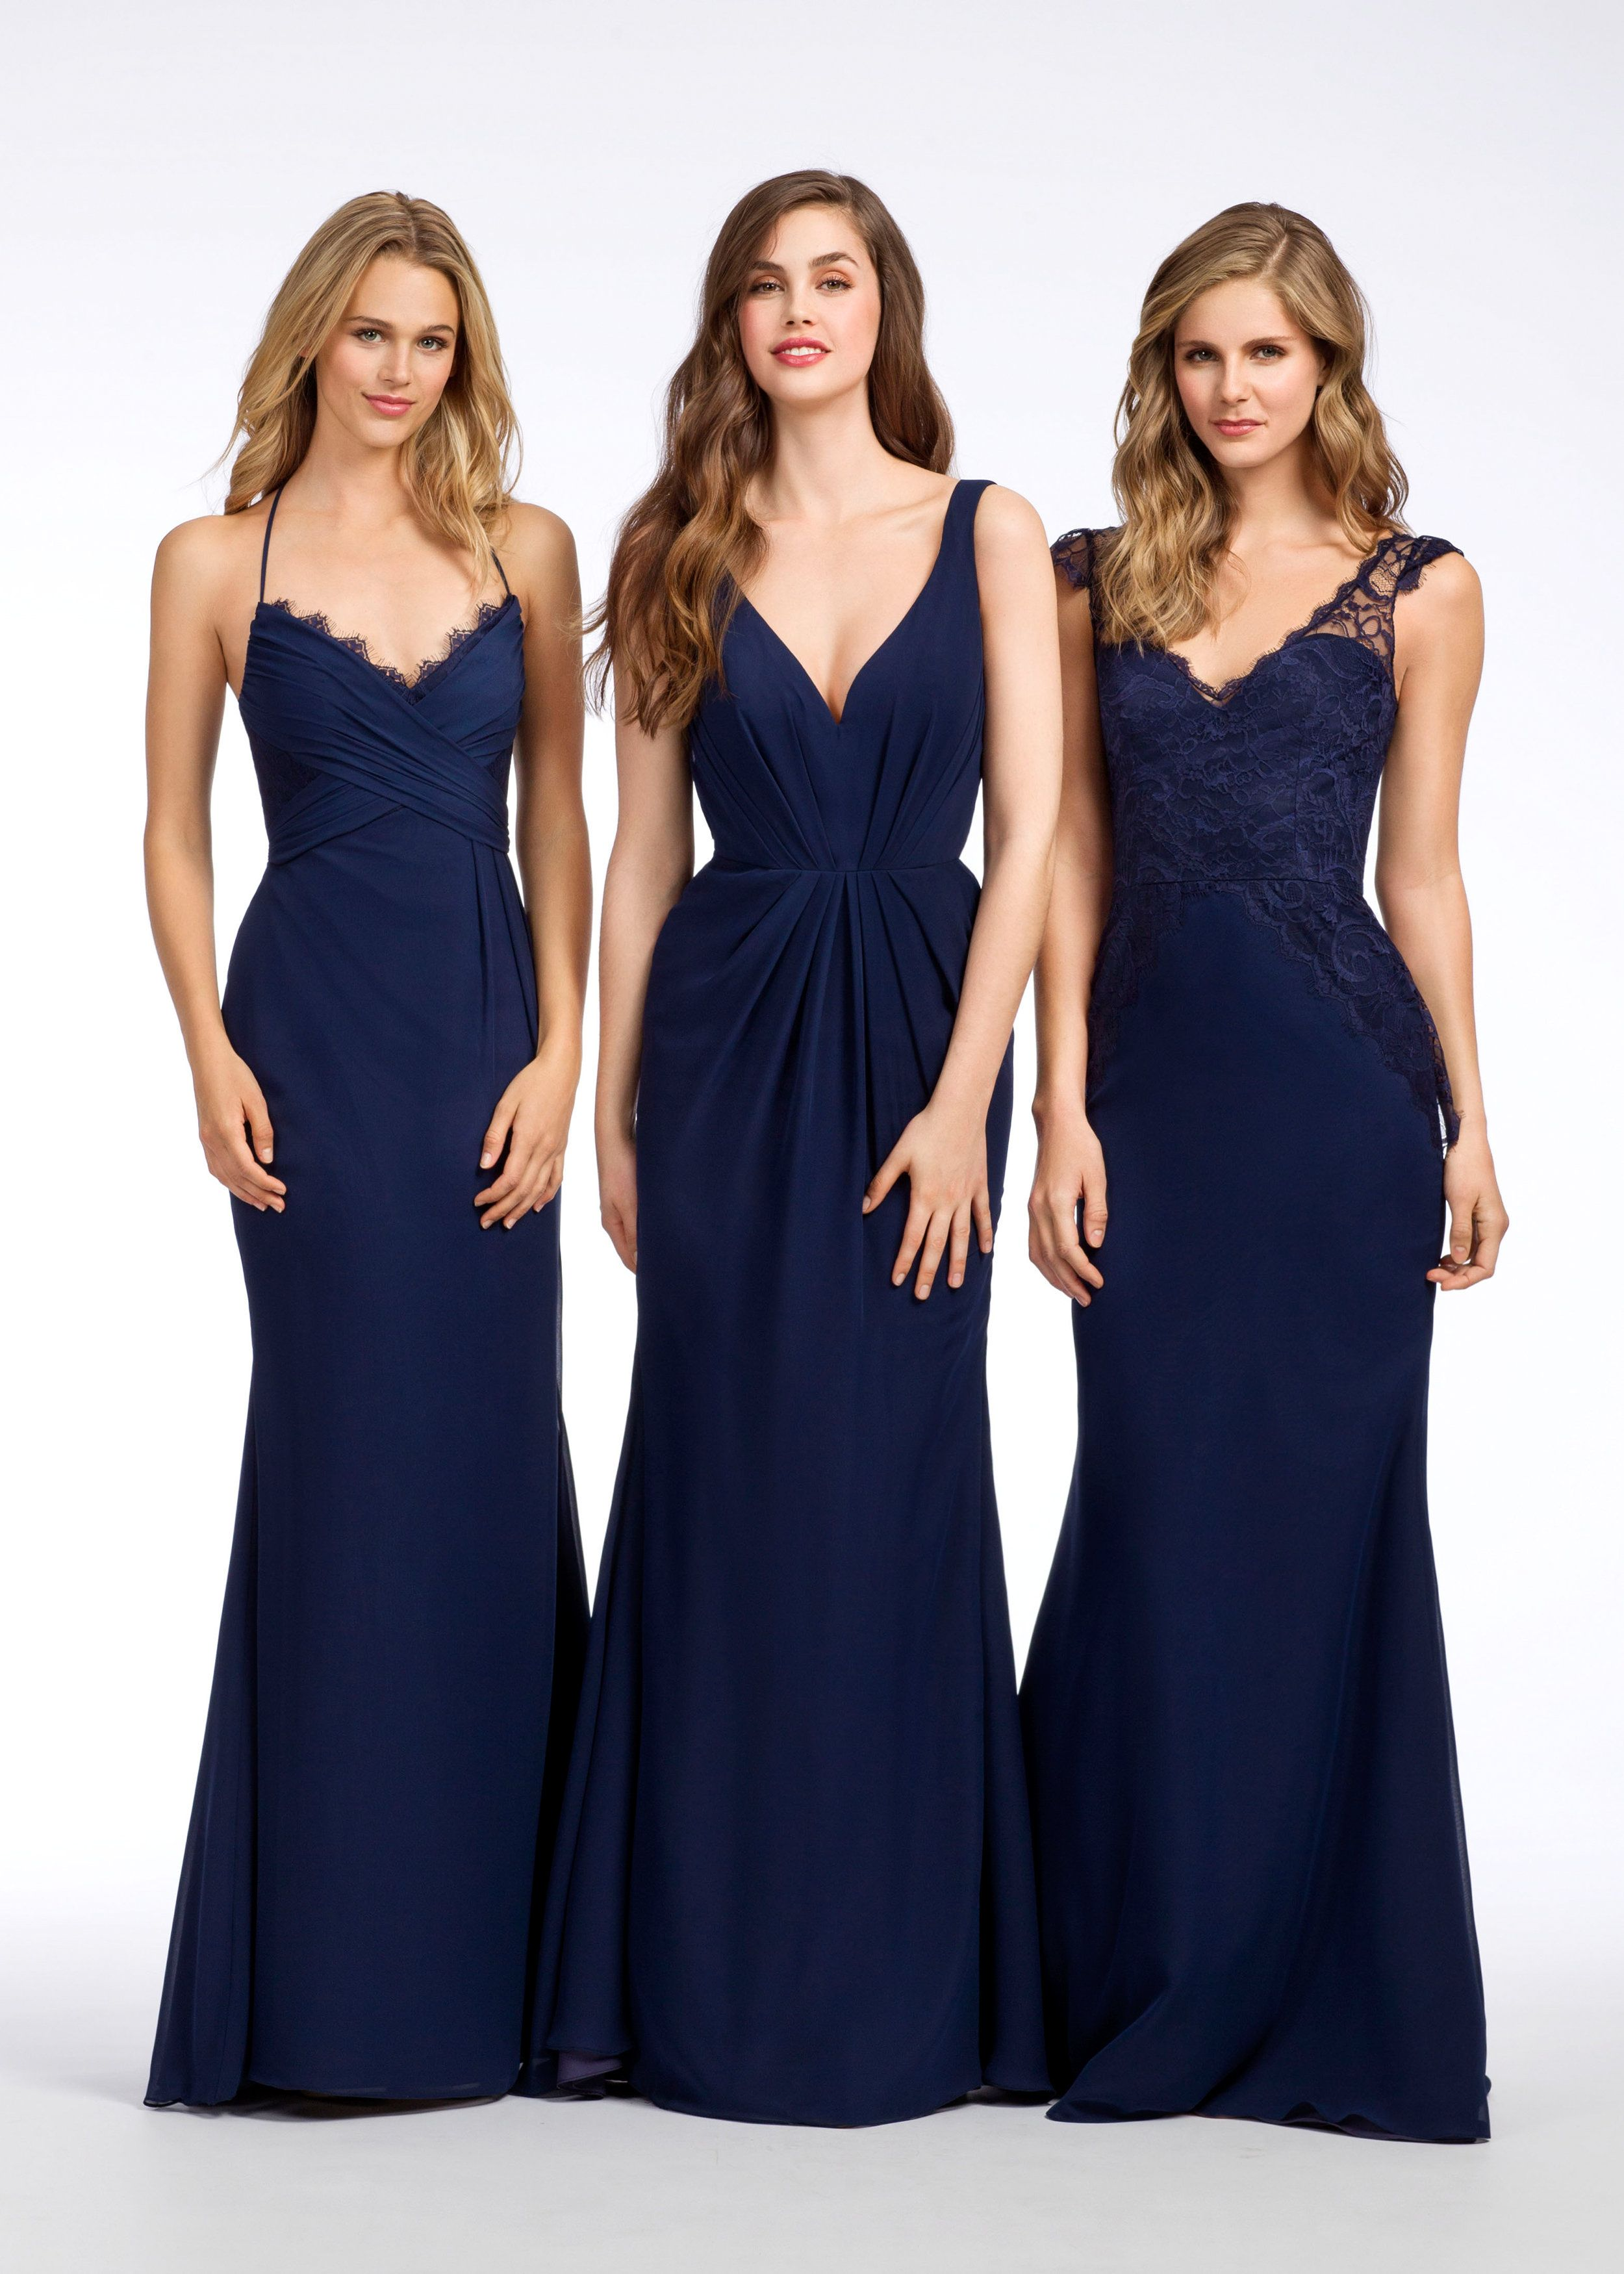 Style 5651 group view bridesmaid dresses pinterest hayley paige indigo chiffon a line bridesmaid gown v neckline natural waist with sunburst draped skirt open cut out back ombrellifo Gallery